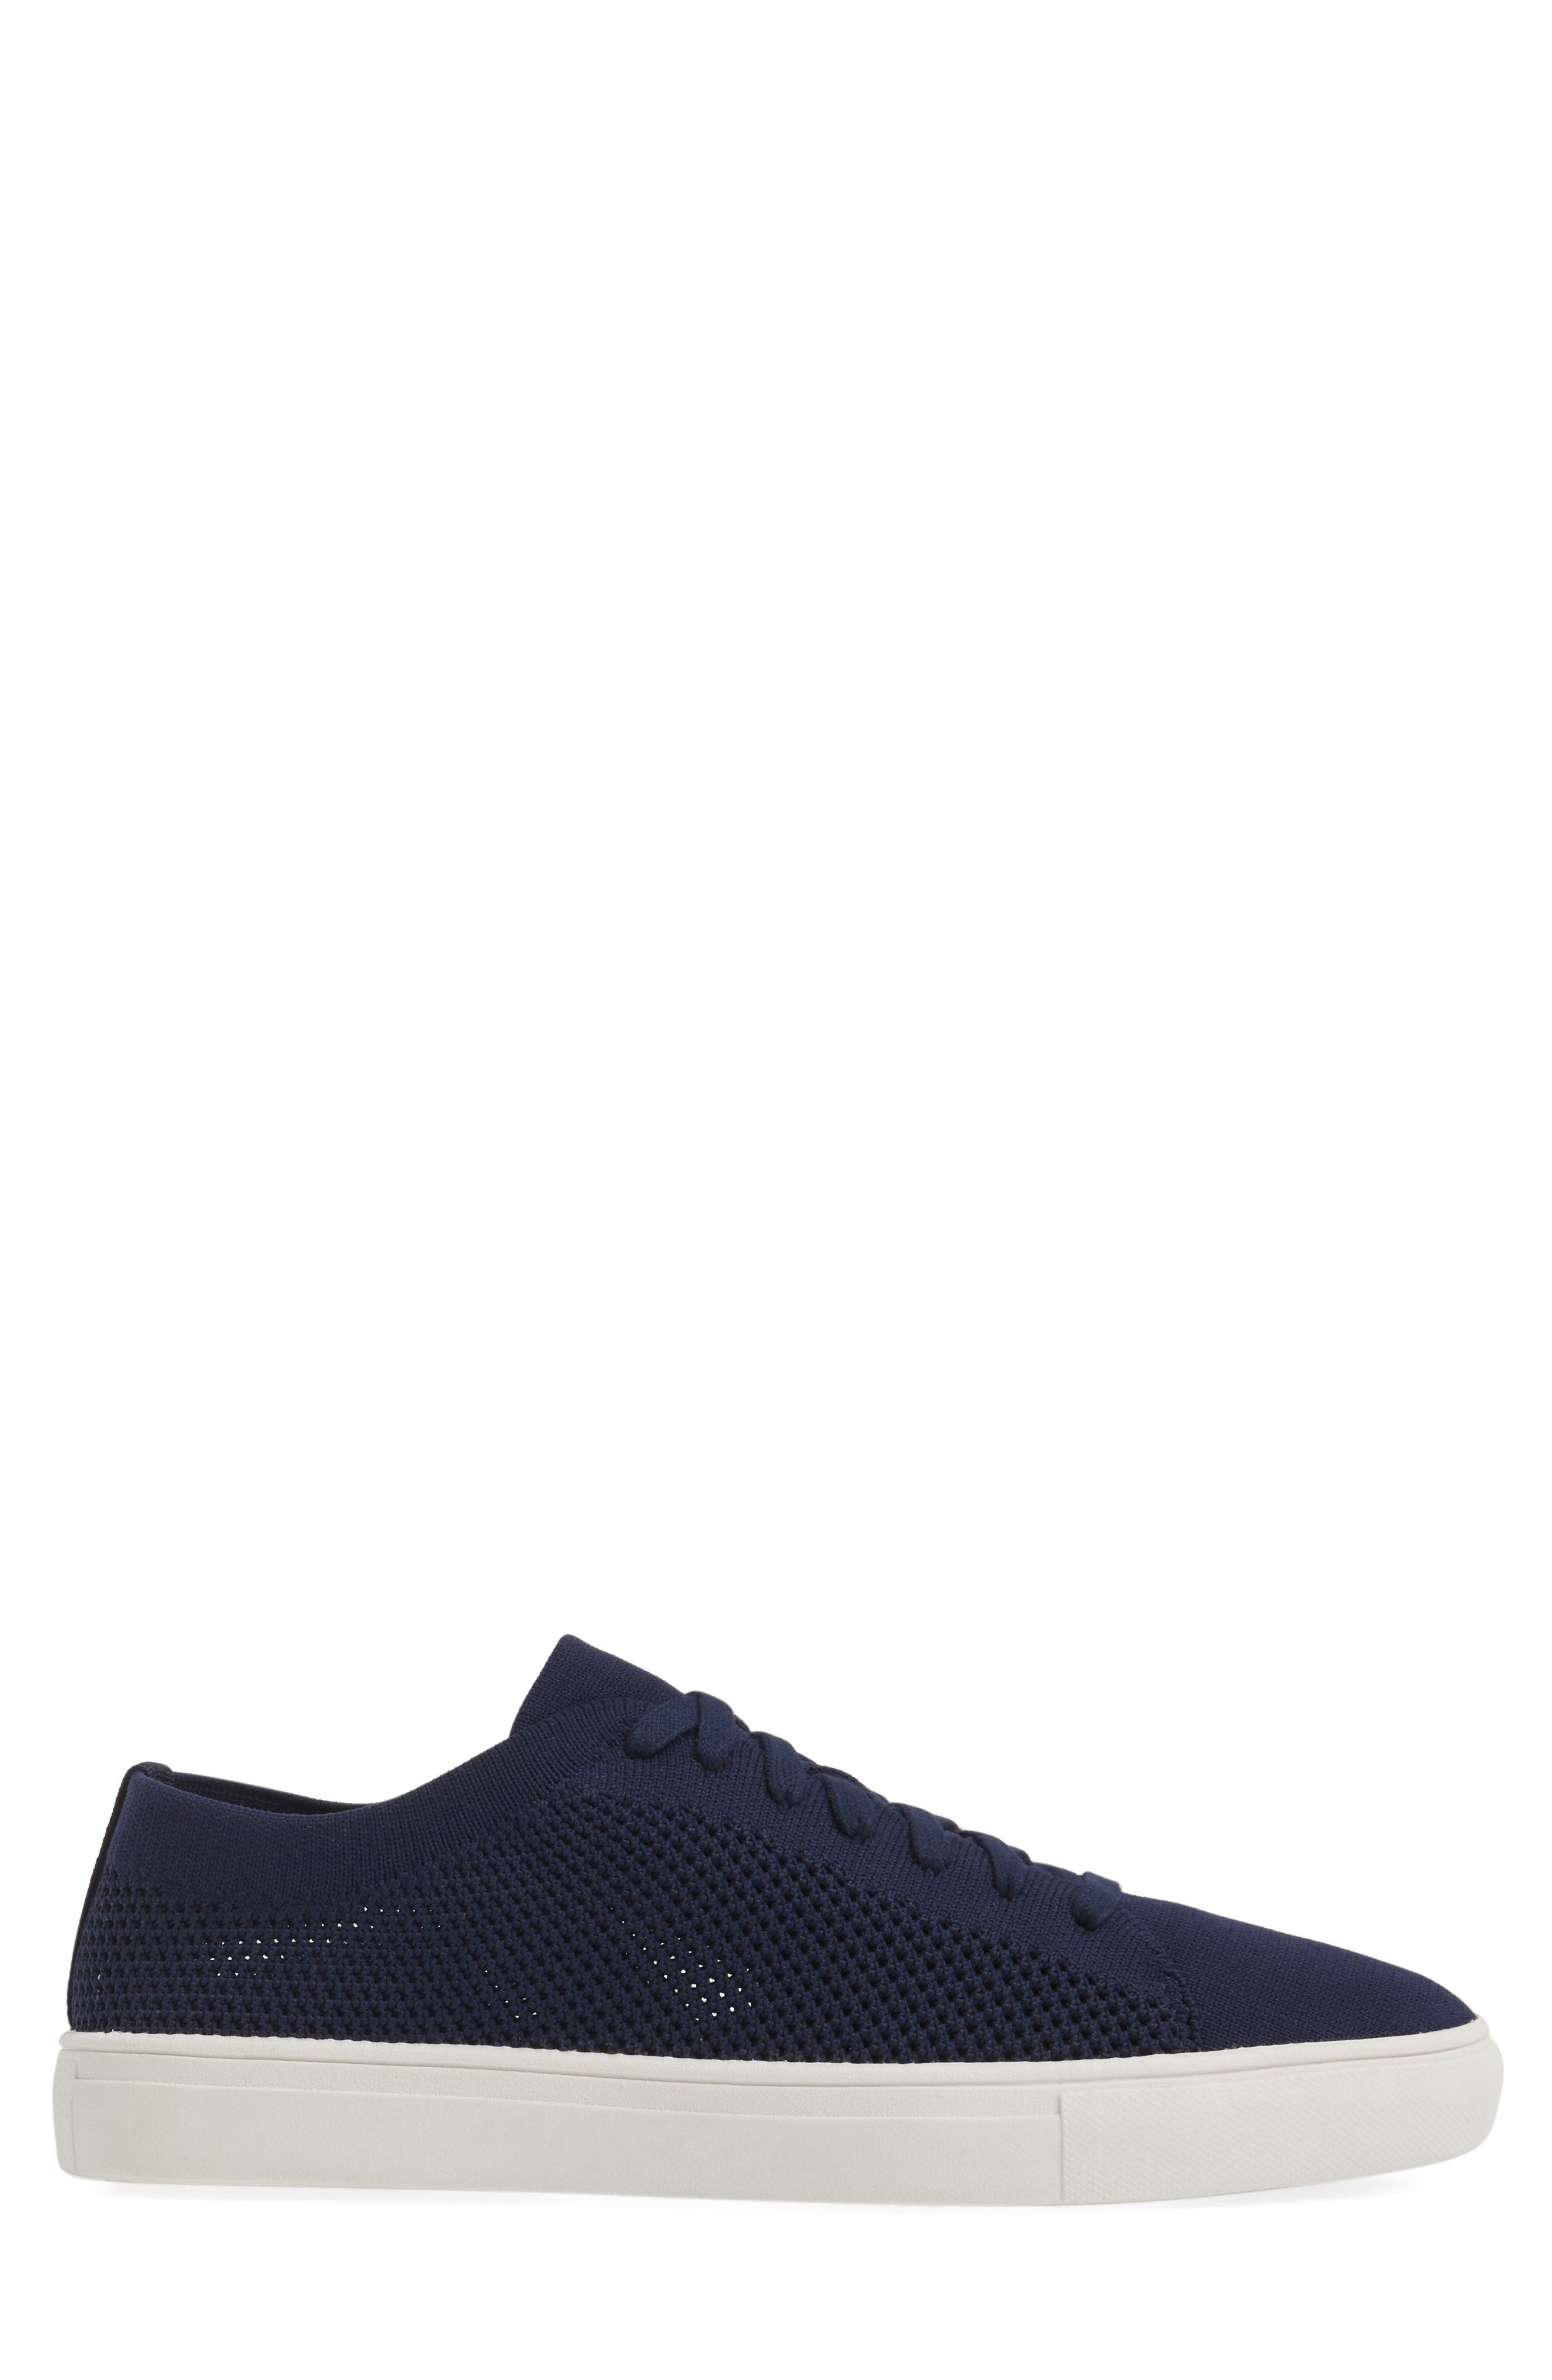 On the Road Woven Sneaker,                             Alternate thumbnail 3, color,                             Navy